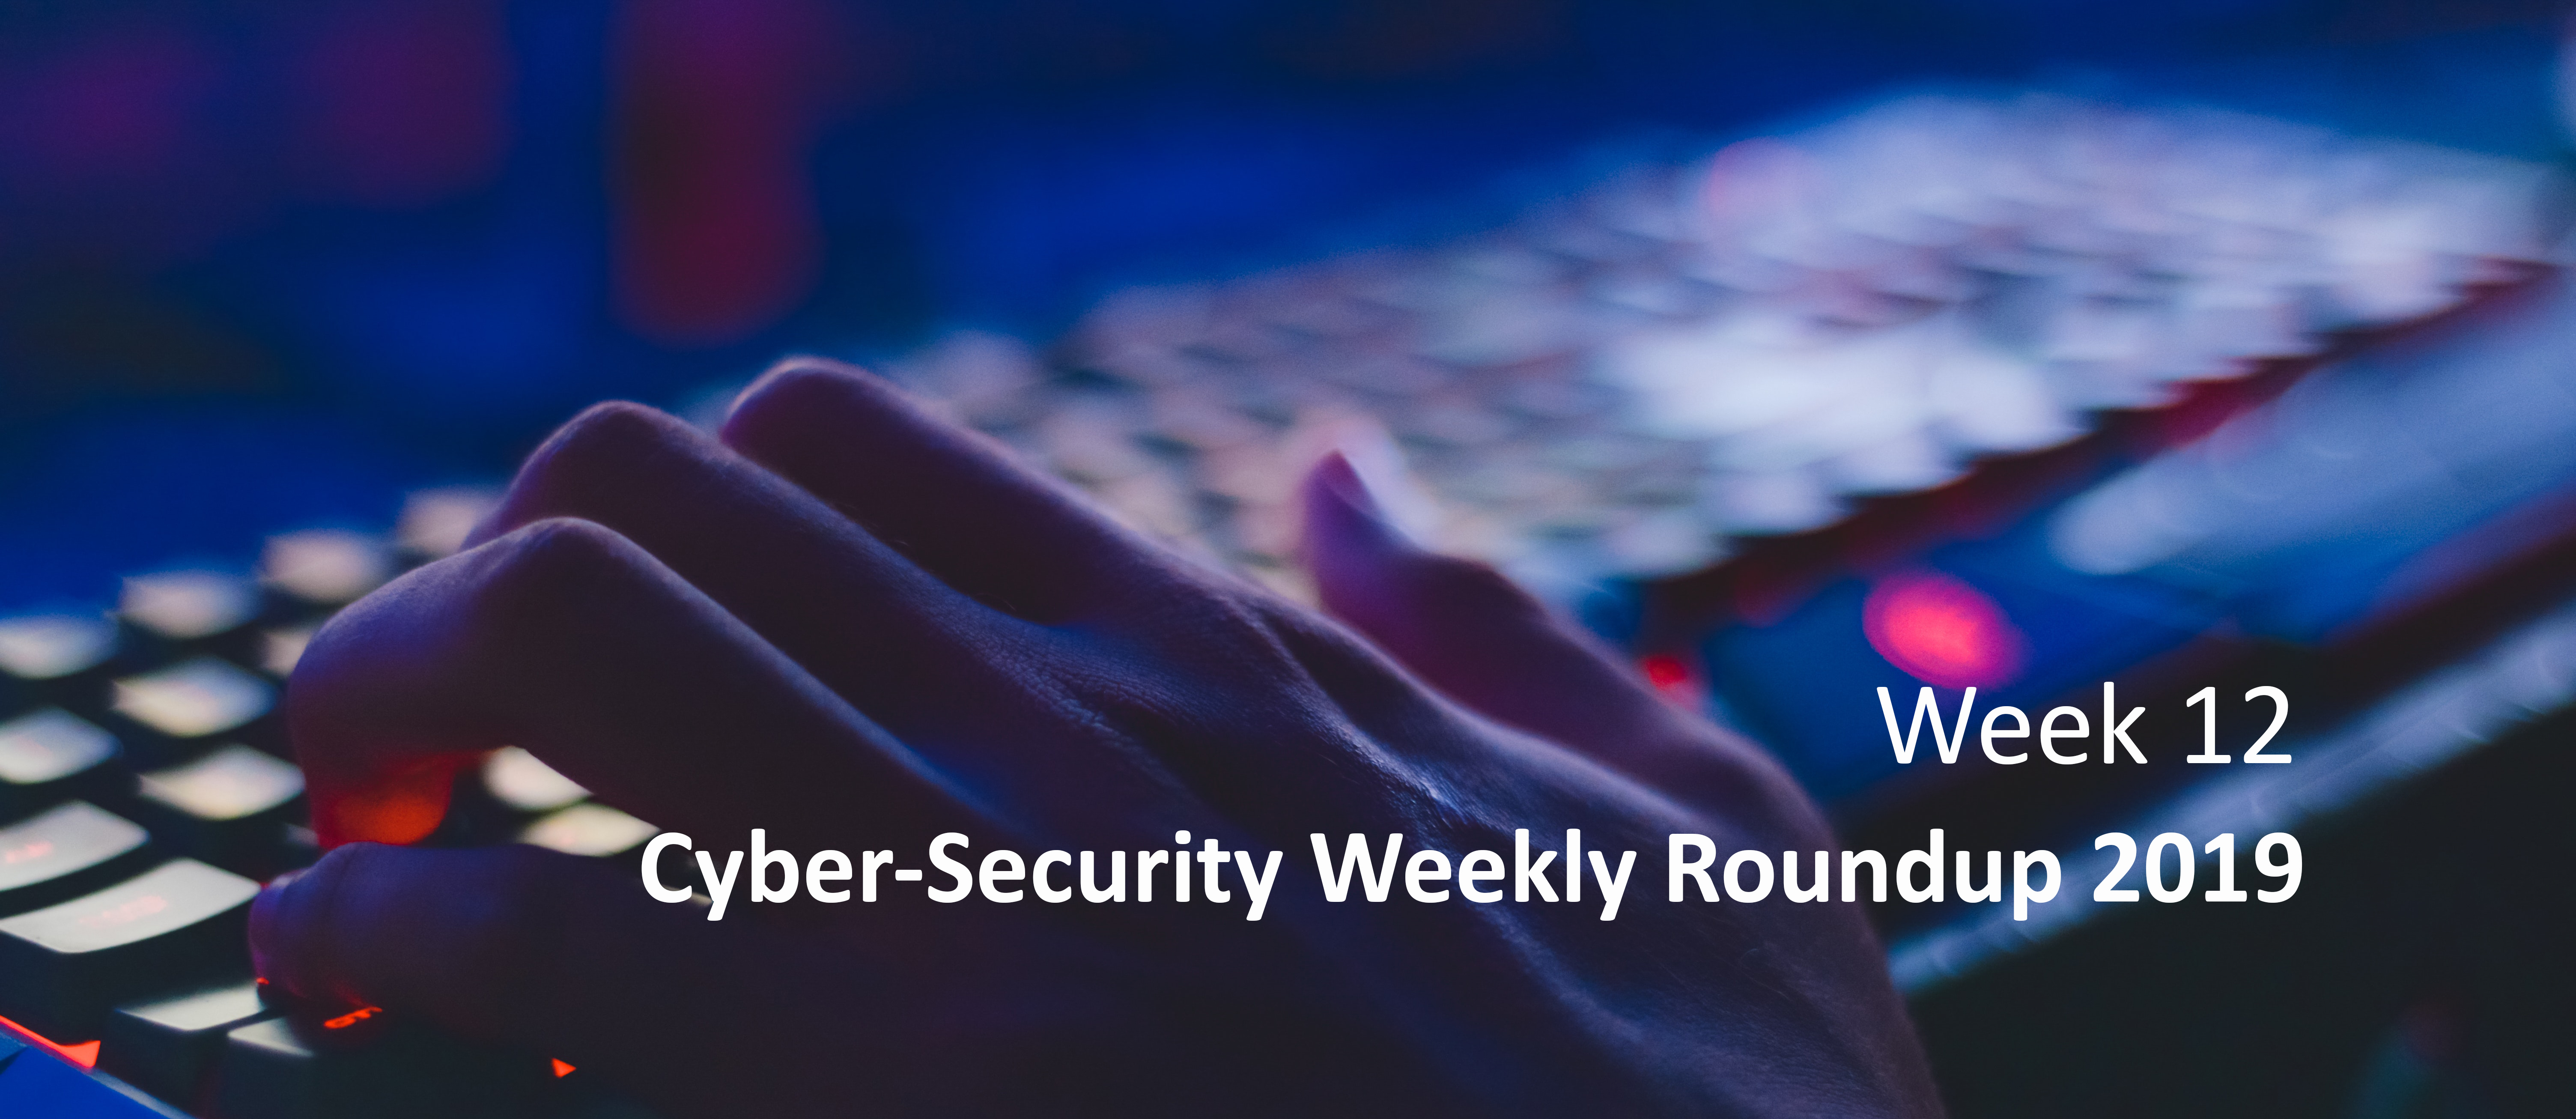 Cyber Attack Weekly Round Up wk 12